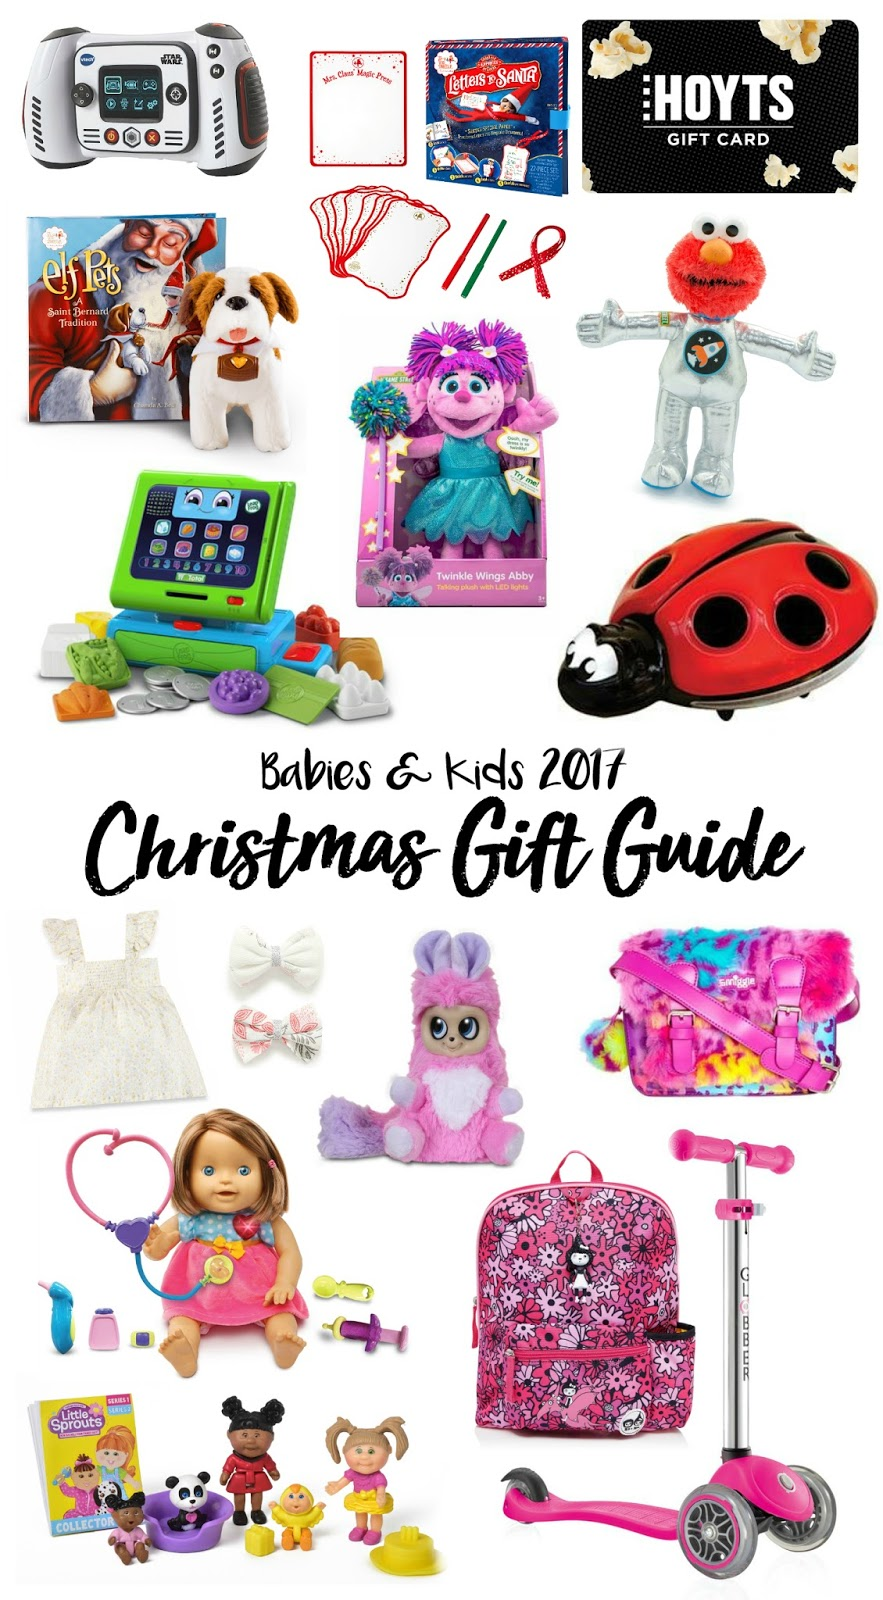 Christmas Ideas For Kids Presents.Southern In Law Babies And Kids Gift Guide 2017